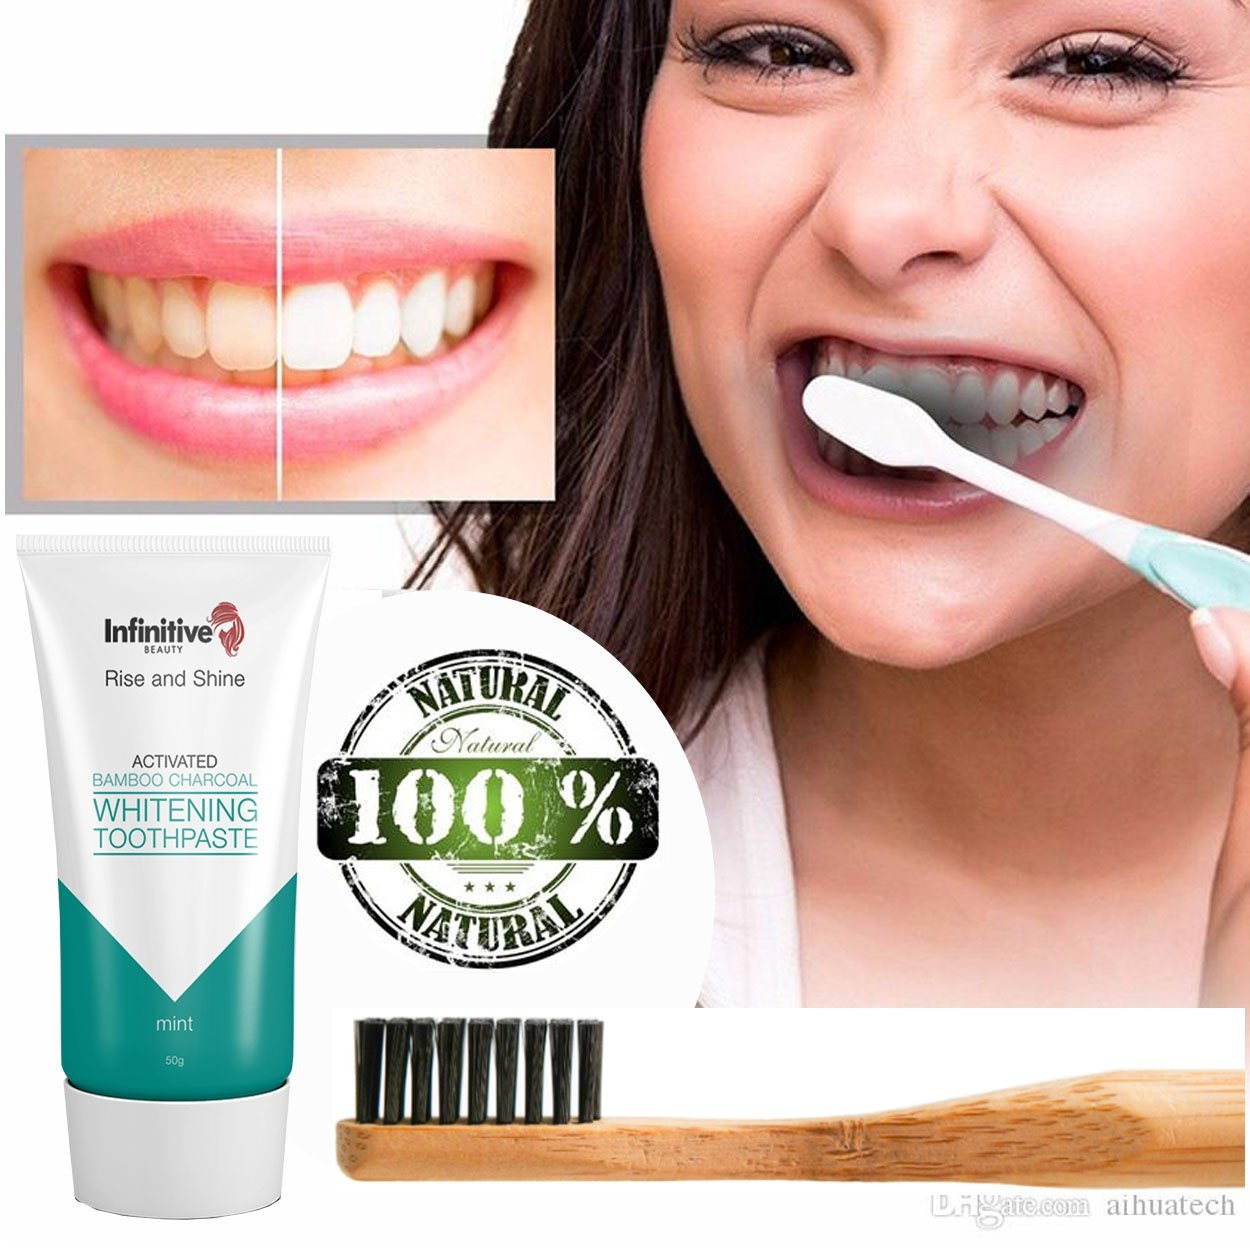 Infinitive Beauty Rise And Shine Activated Bamboo Charcoal Whitening Toothpaste - Mint - 50g by  Forever Cosmetics